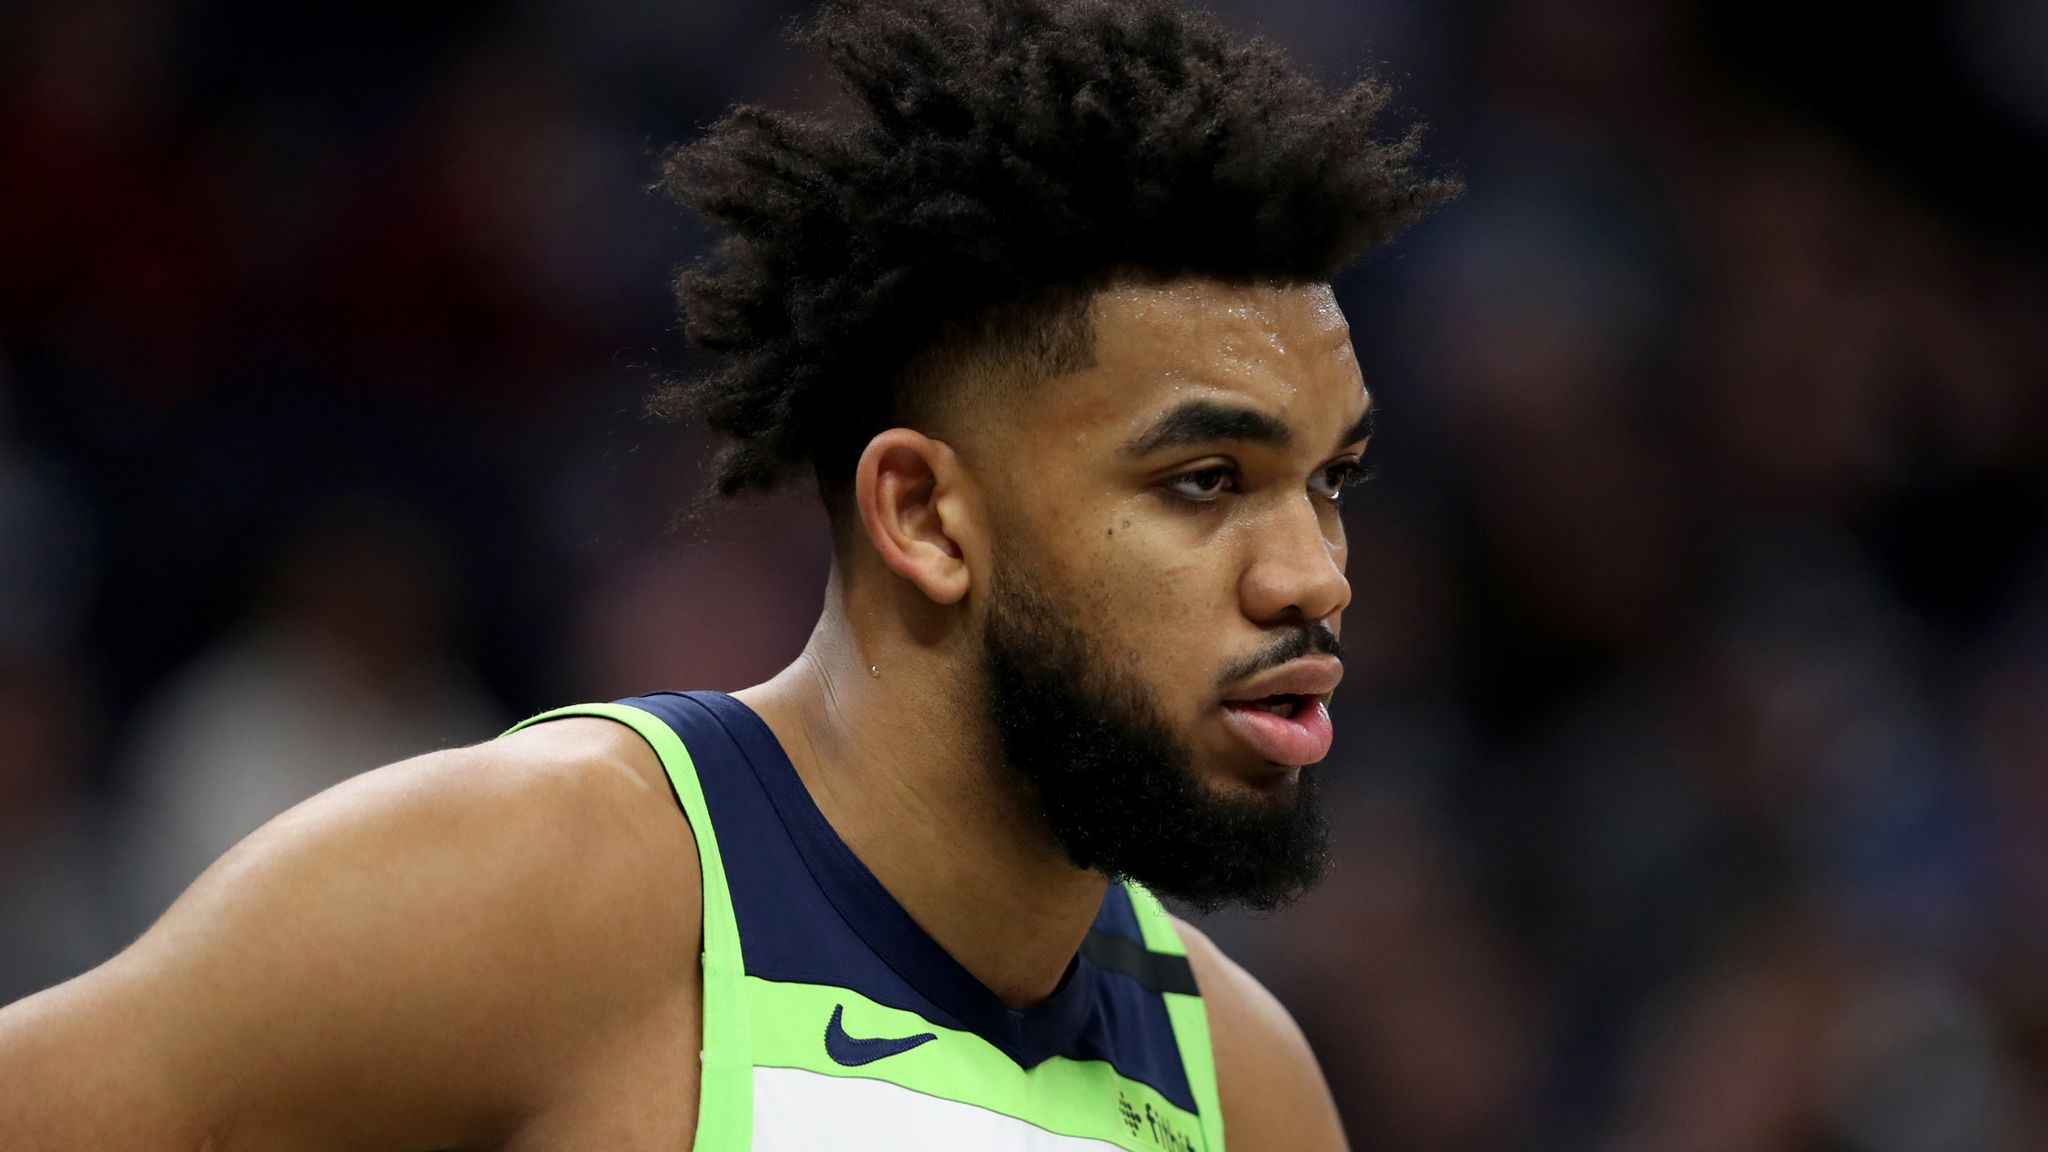 Karl Anthony Towns Mother Dies After Battle With Coronavirus Nba News Sky Sports